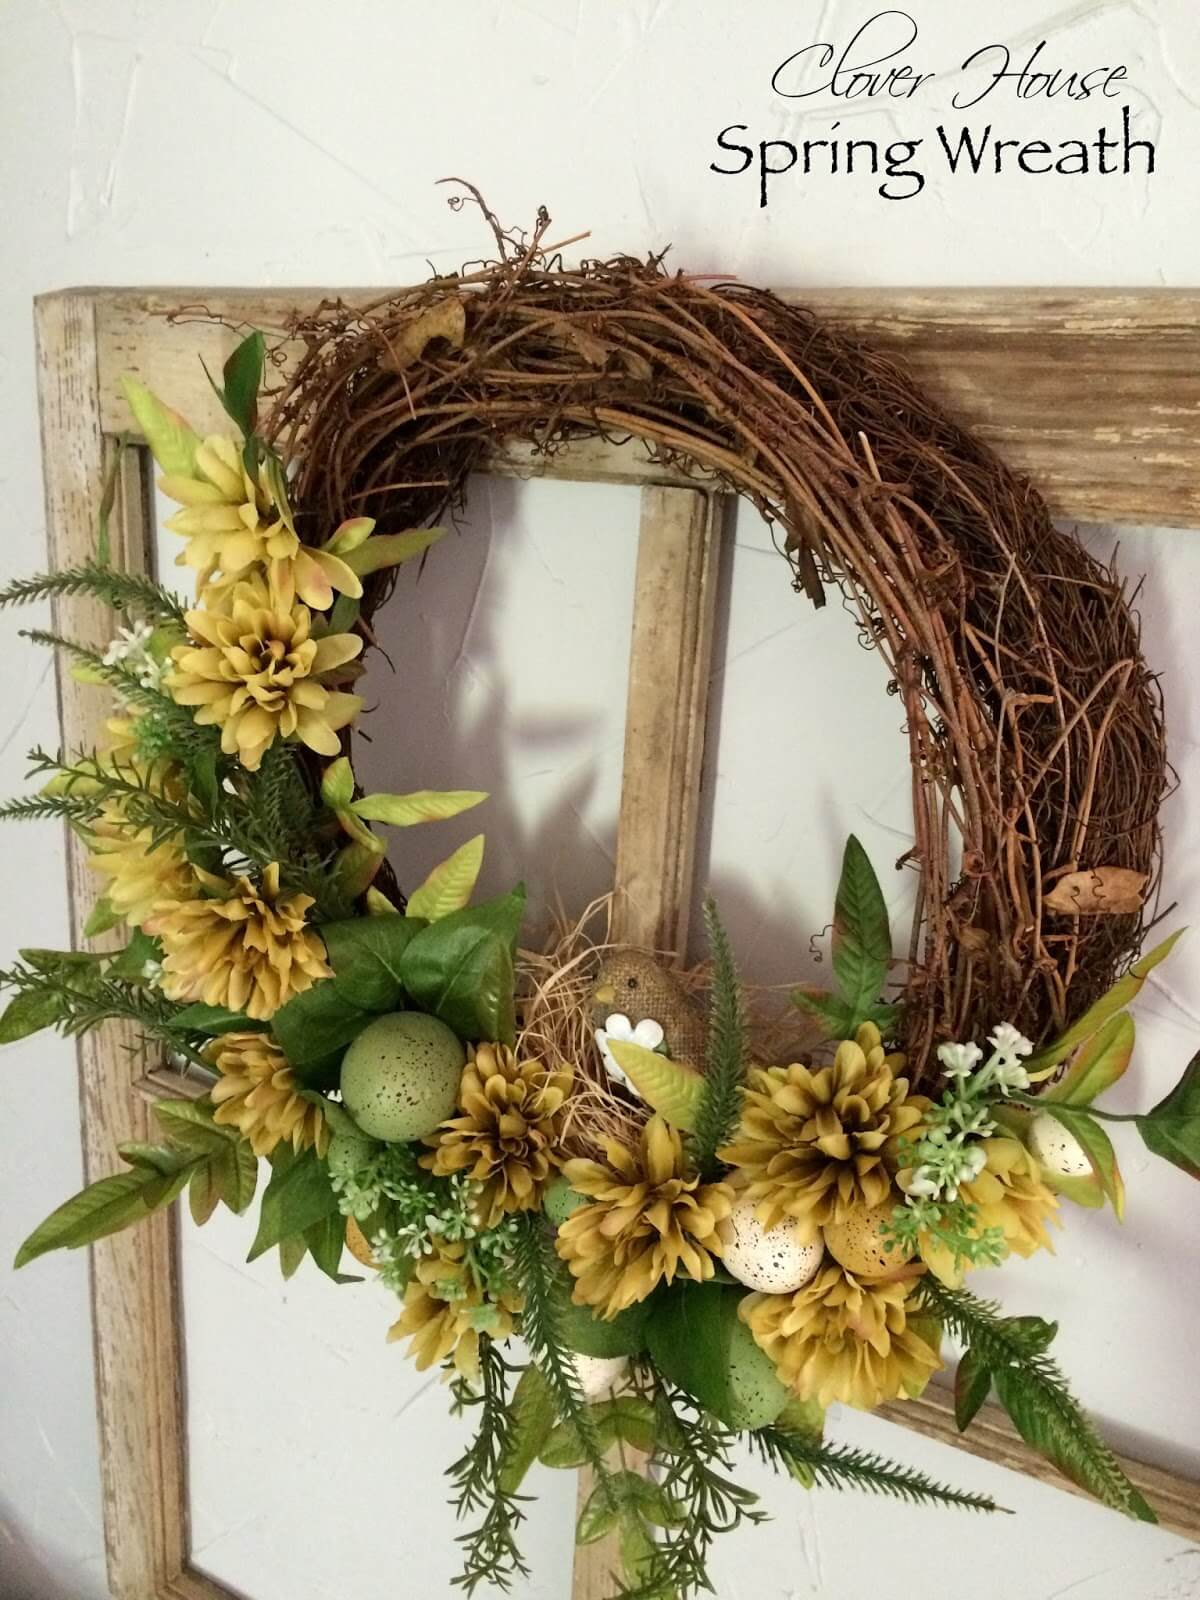 Nest Themed Wreath with Wild Greenery